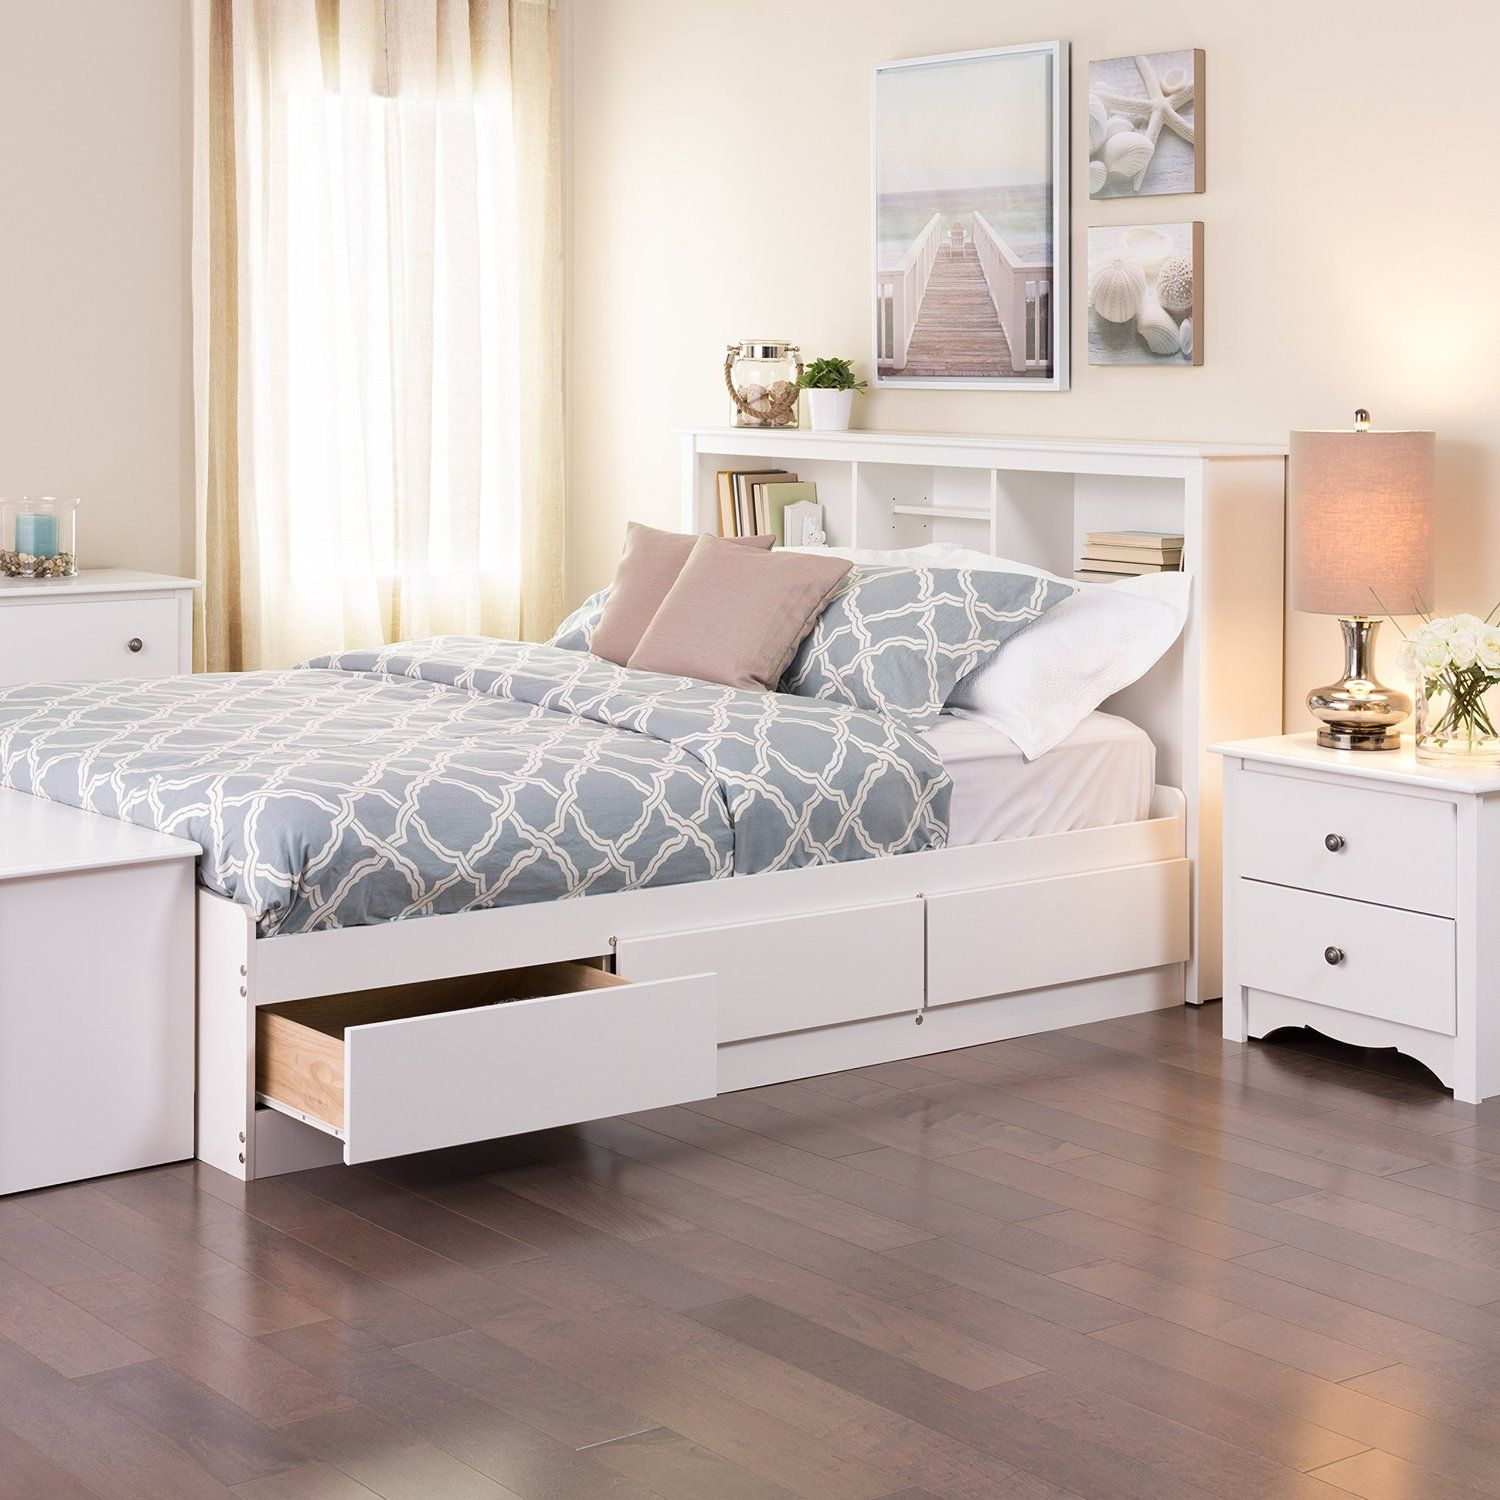 White Queen Bedframe With 6 Drawers And Headboard With Shelves